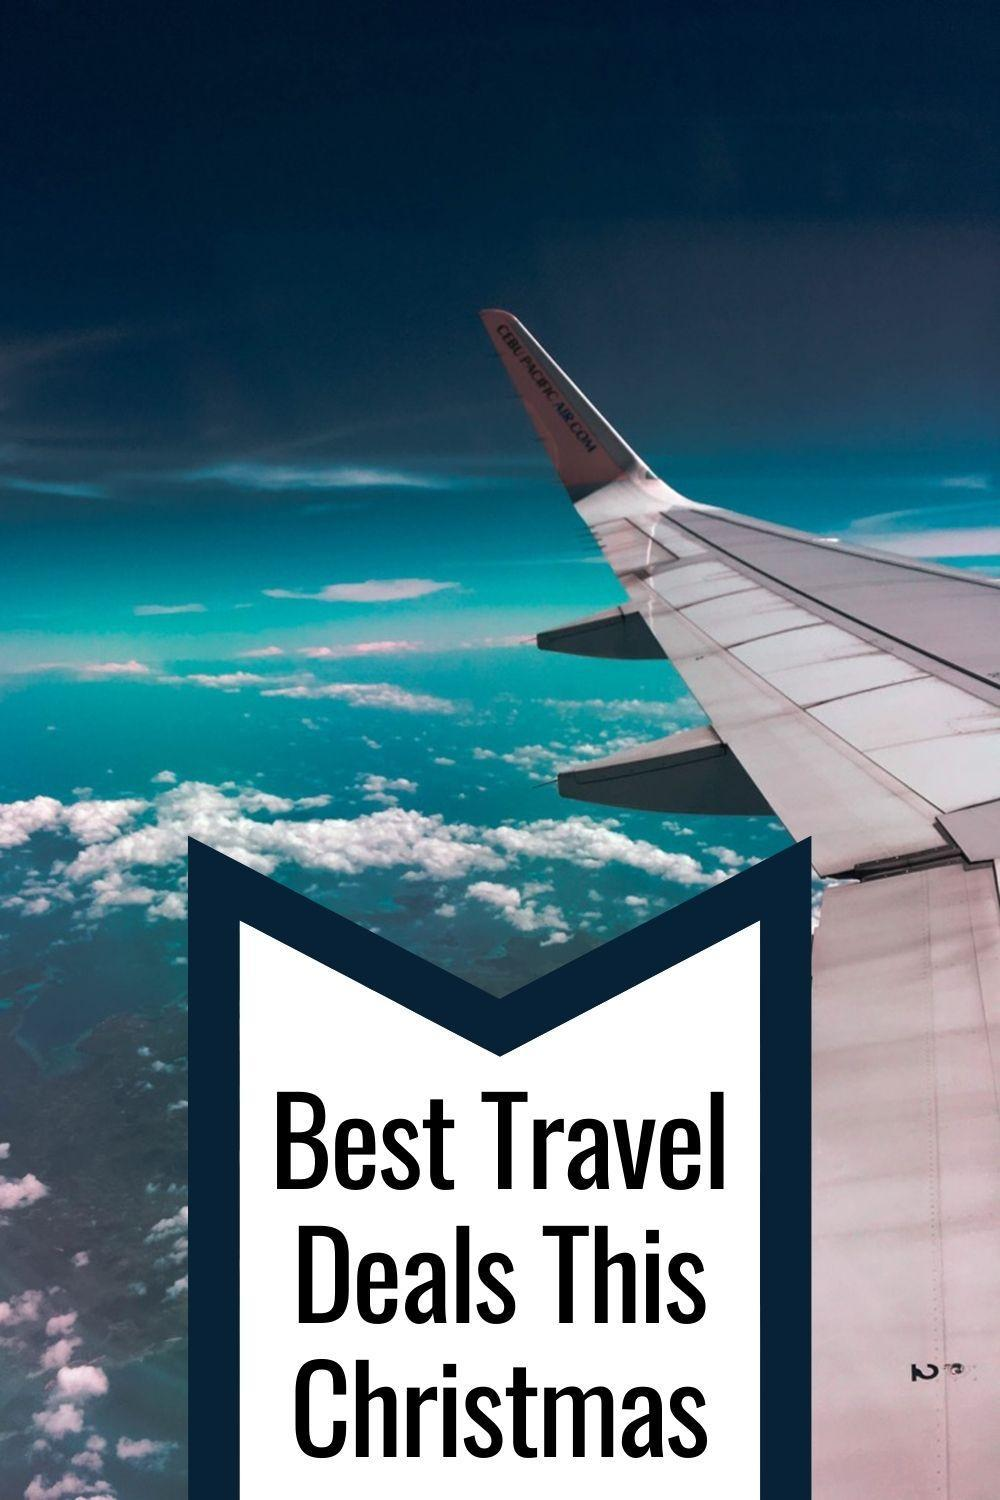 Best Travel Deals This Christmas